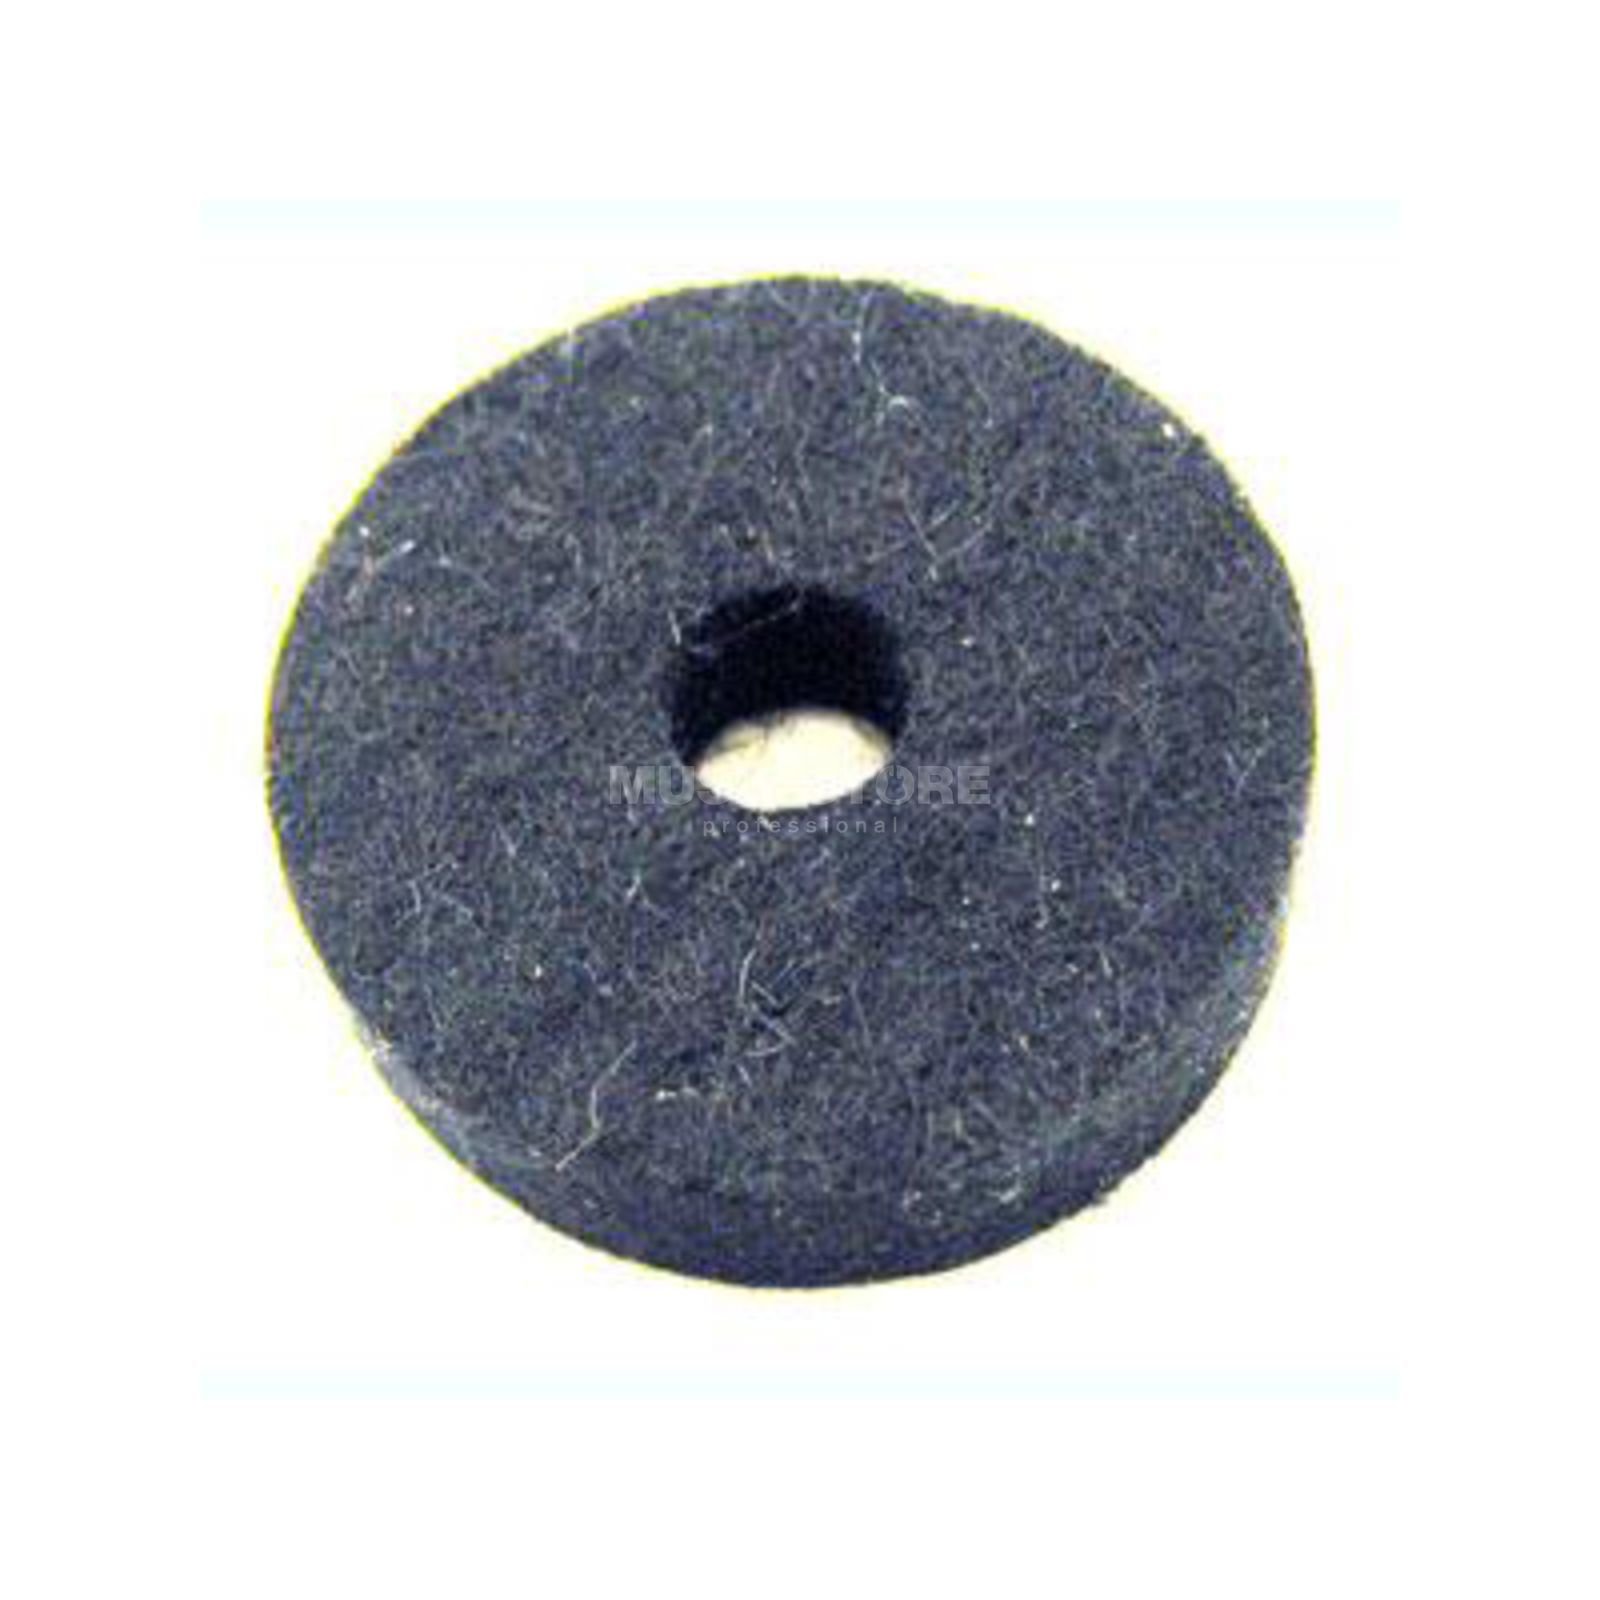 Sonor Cymbal felt, 40x10x10mm, 1 pc Produktbillede